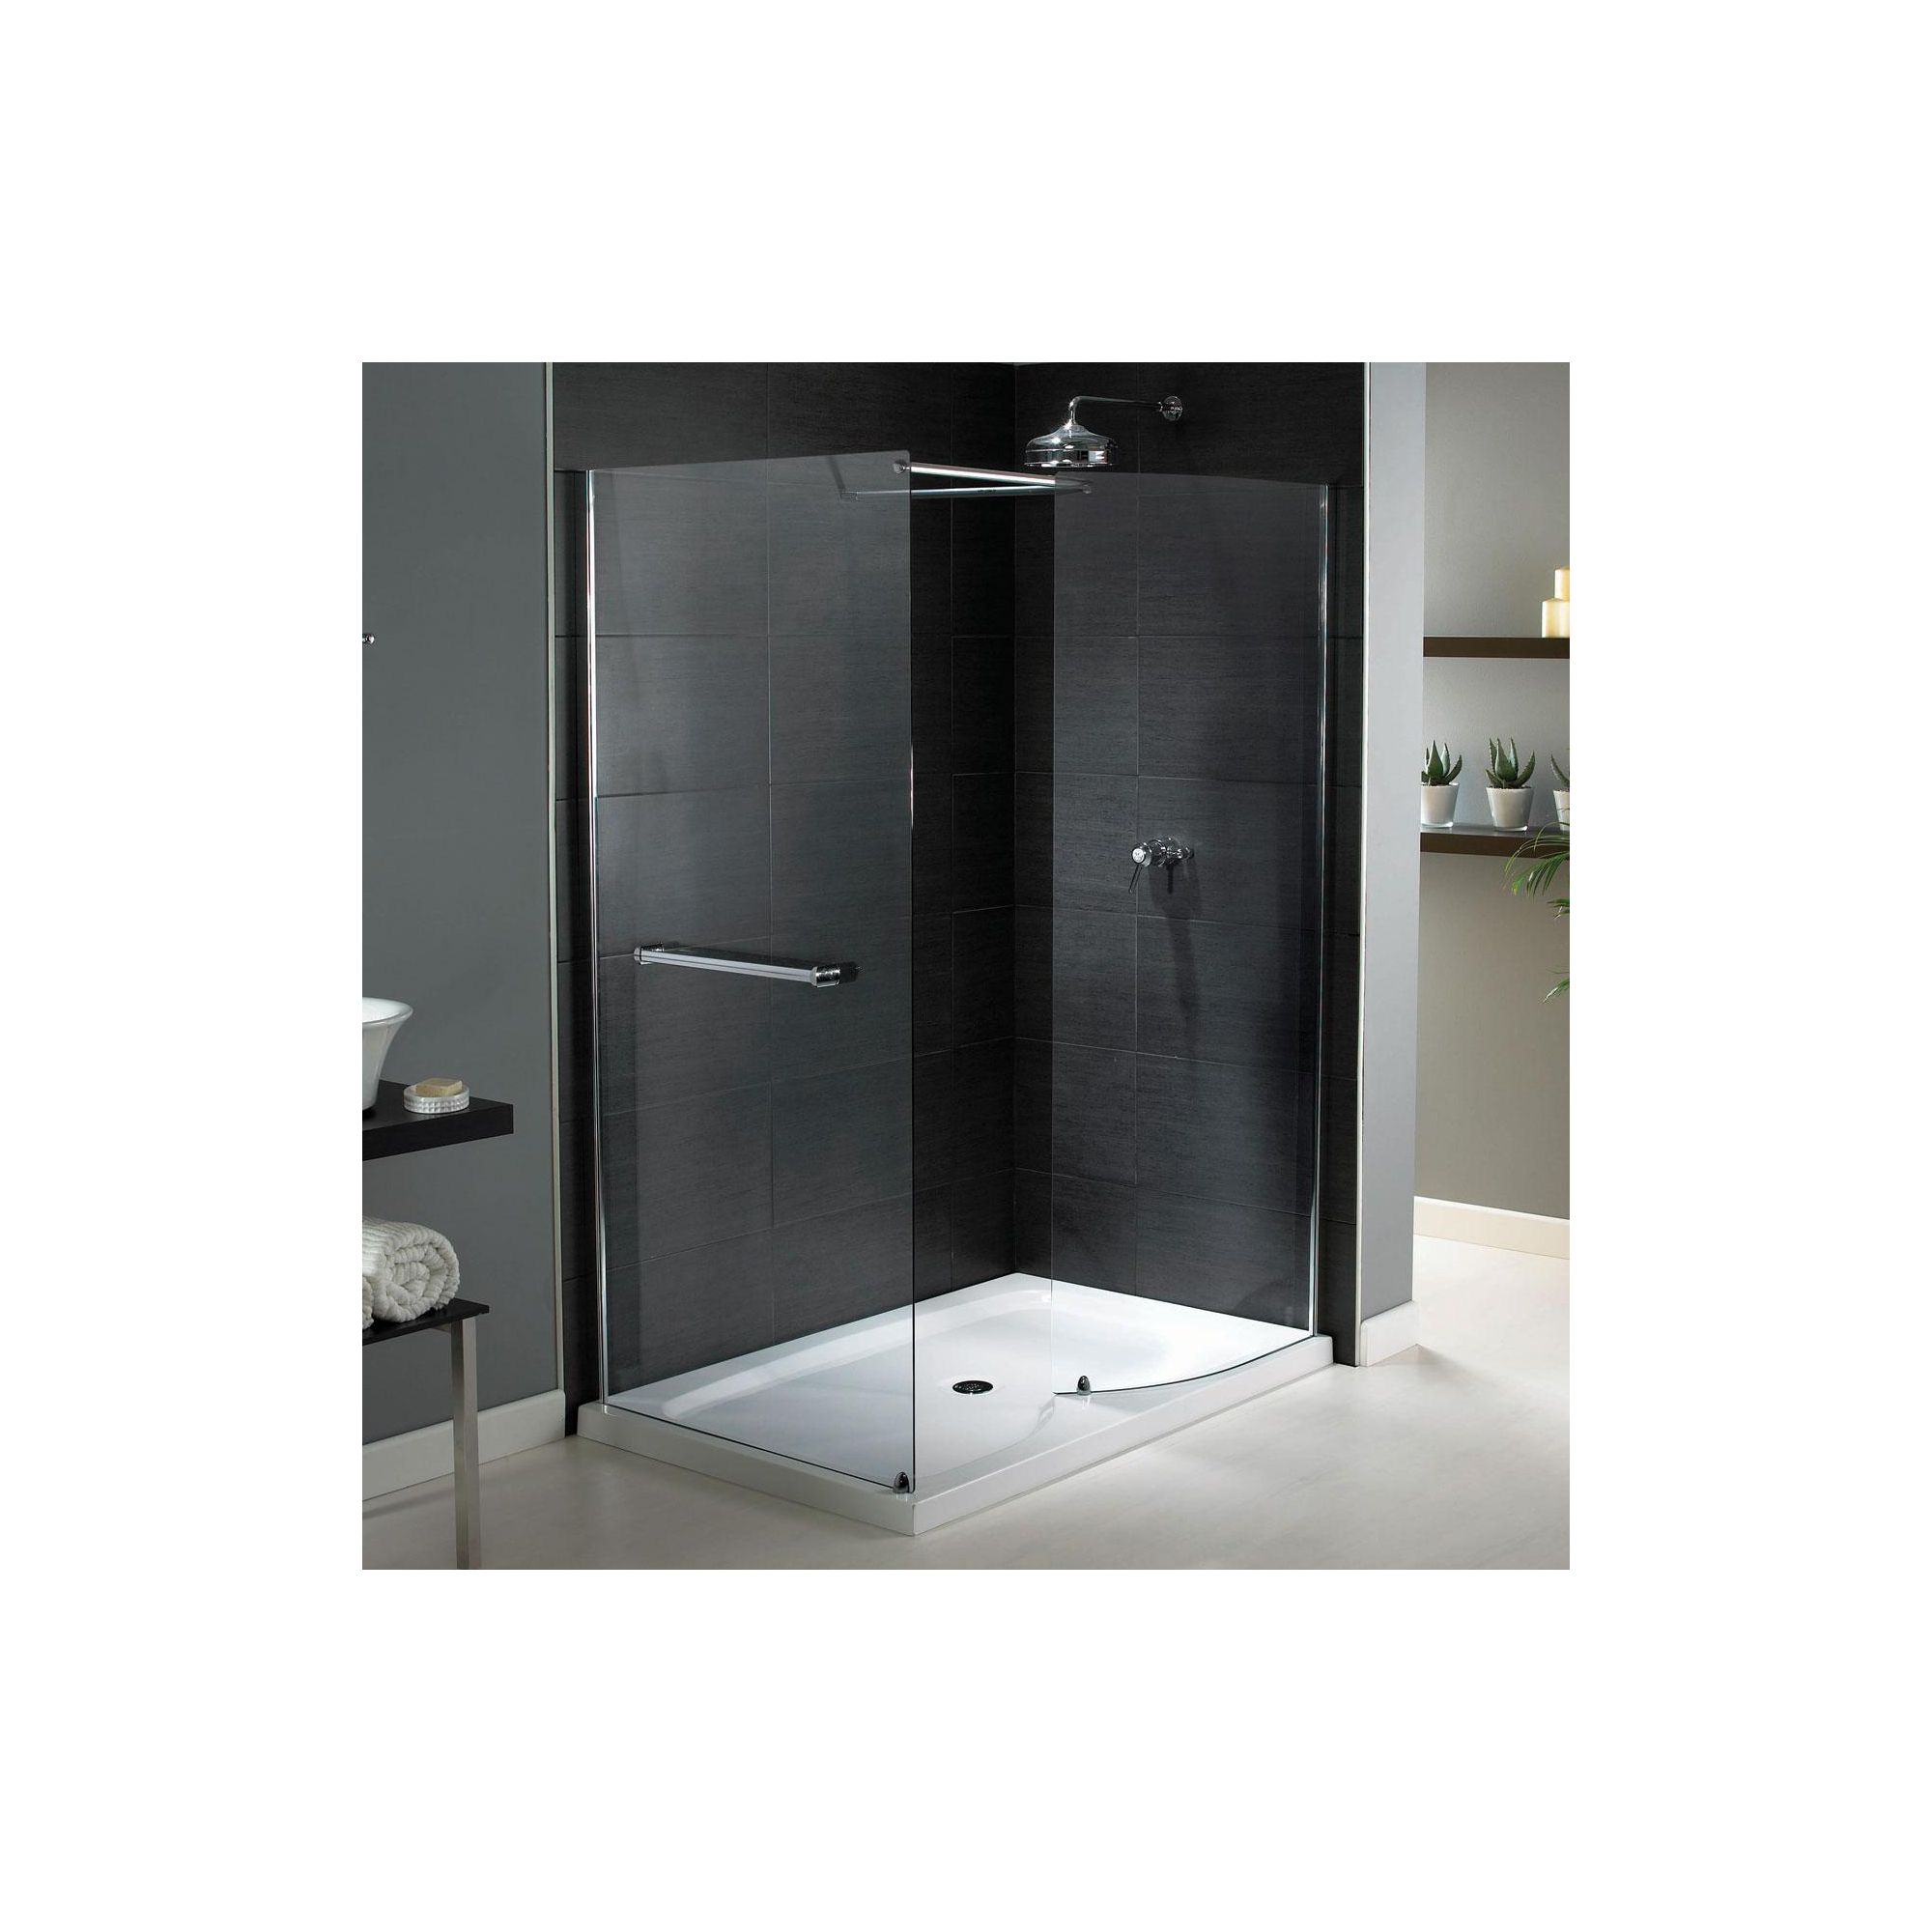 Aqualux Shine Walk-In Shower Enclosure, 1400mm x 900mm, 6mm Glass, Low Profile Tray at Tesco Direct